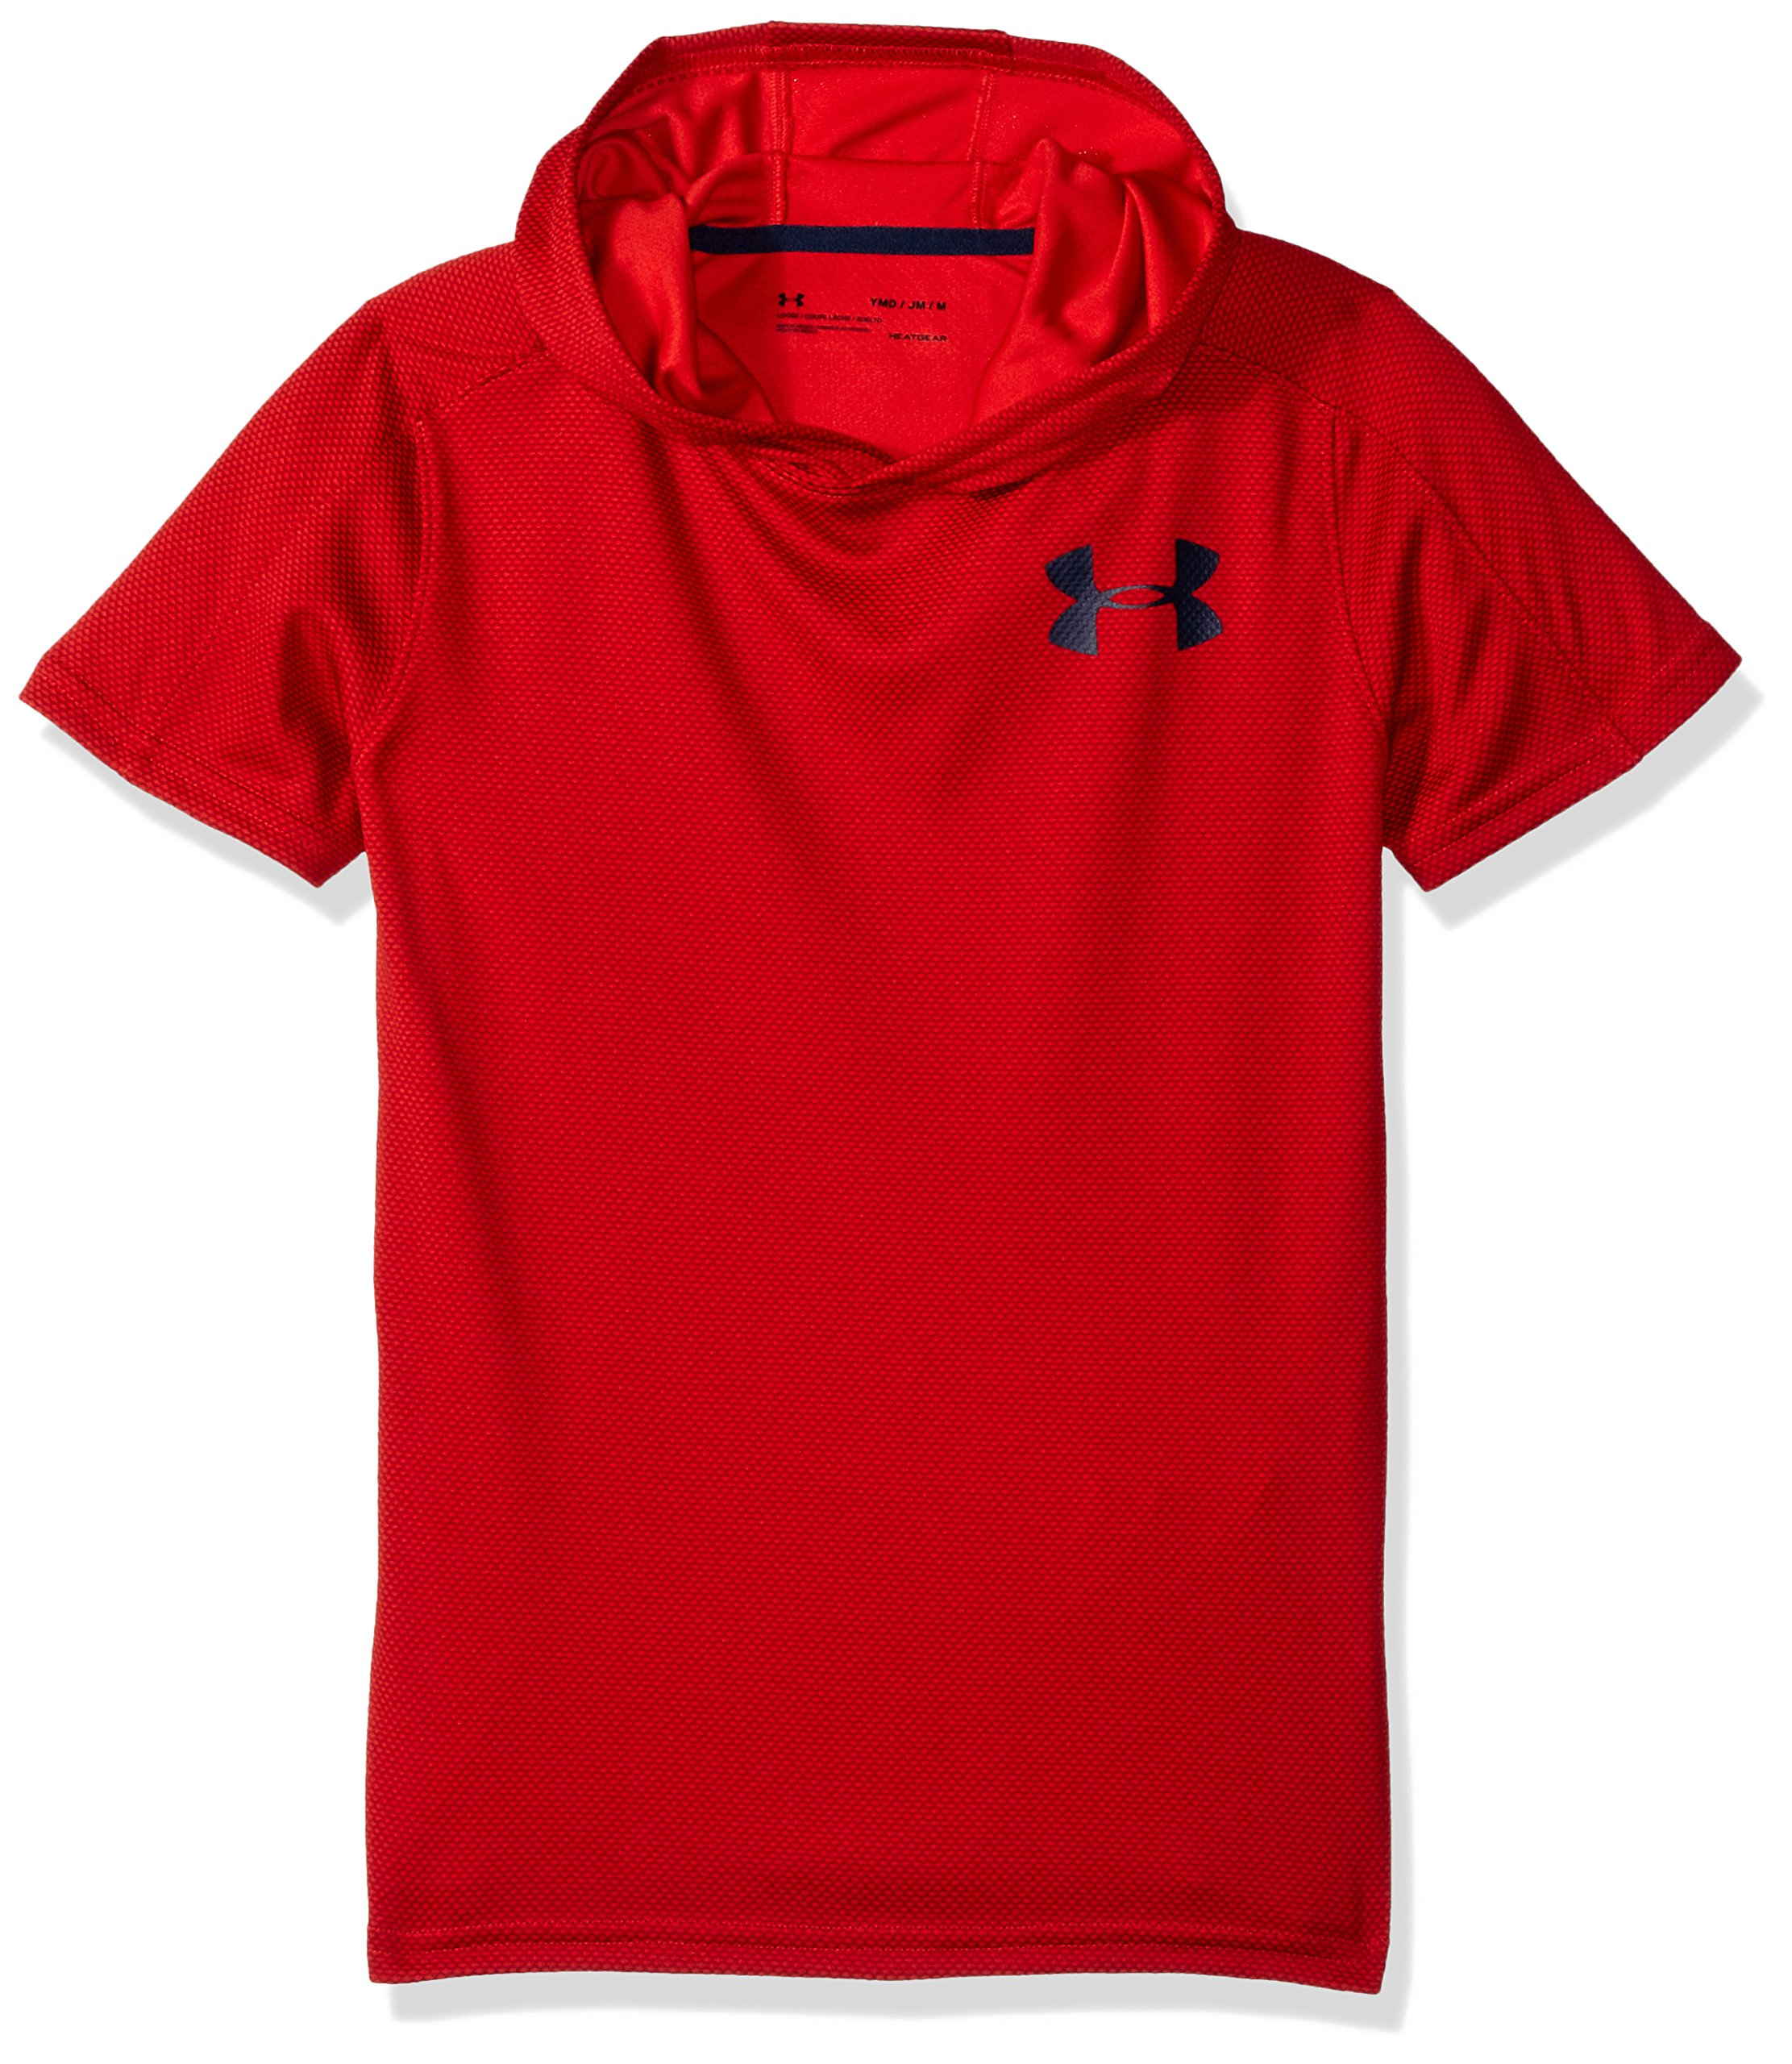 Under Armour Boys' Tech Textured Short Sleeve Hoodie, Red (600)/Academy, Youth X-Large